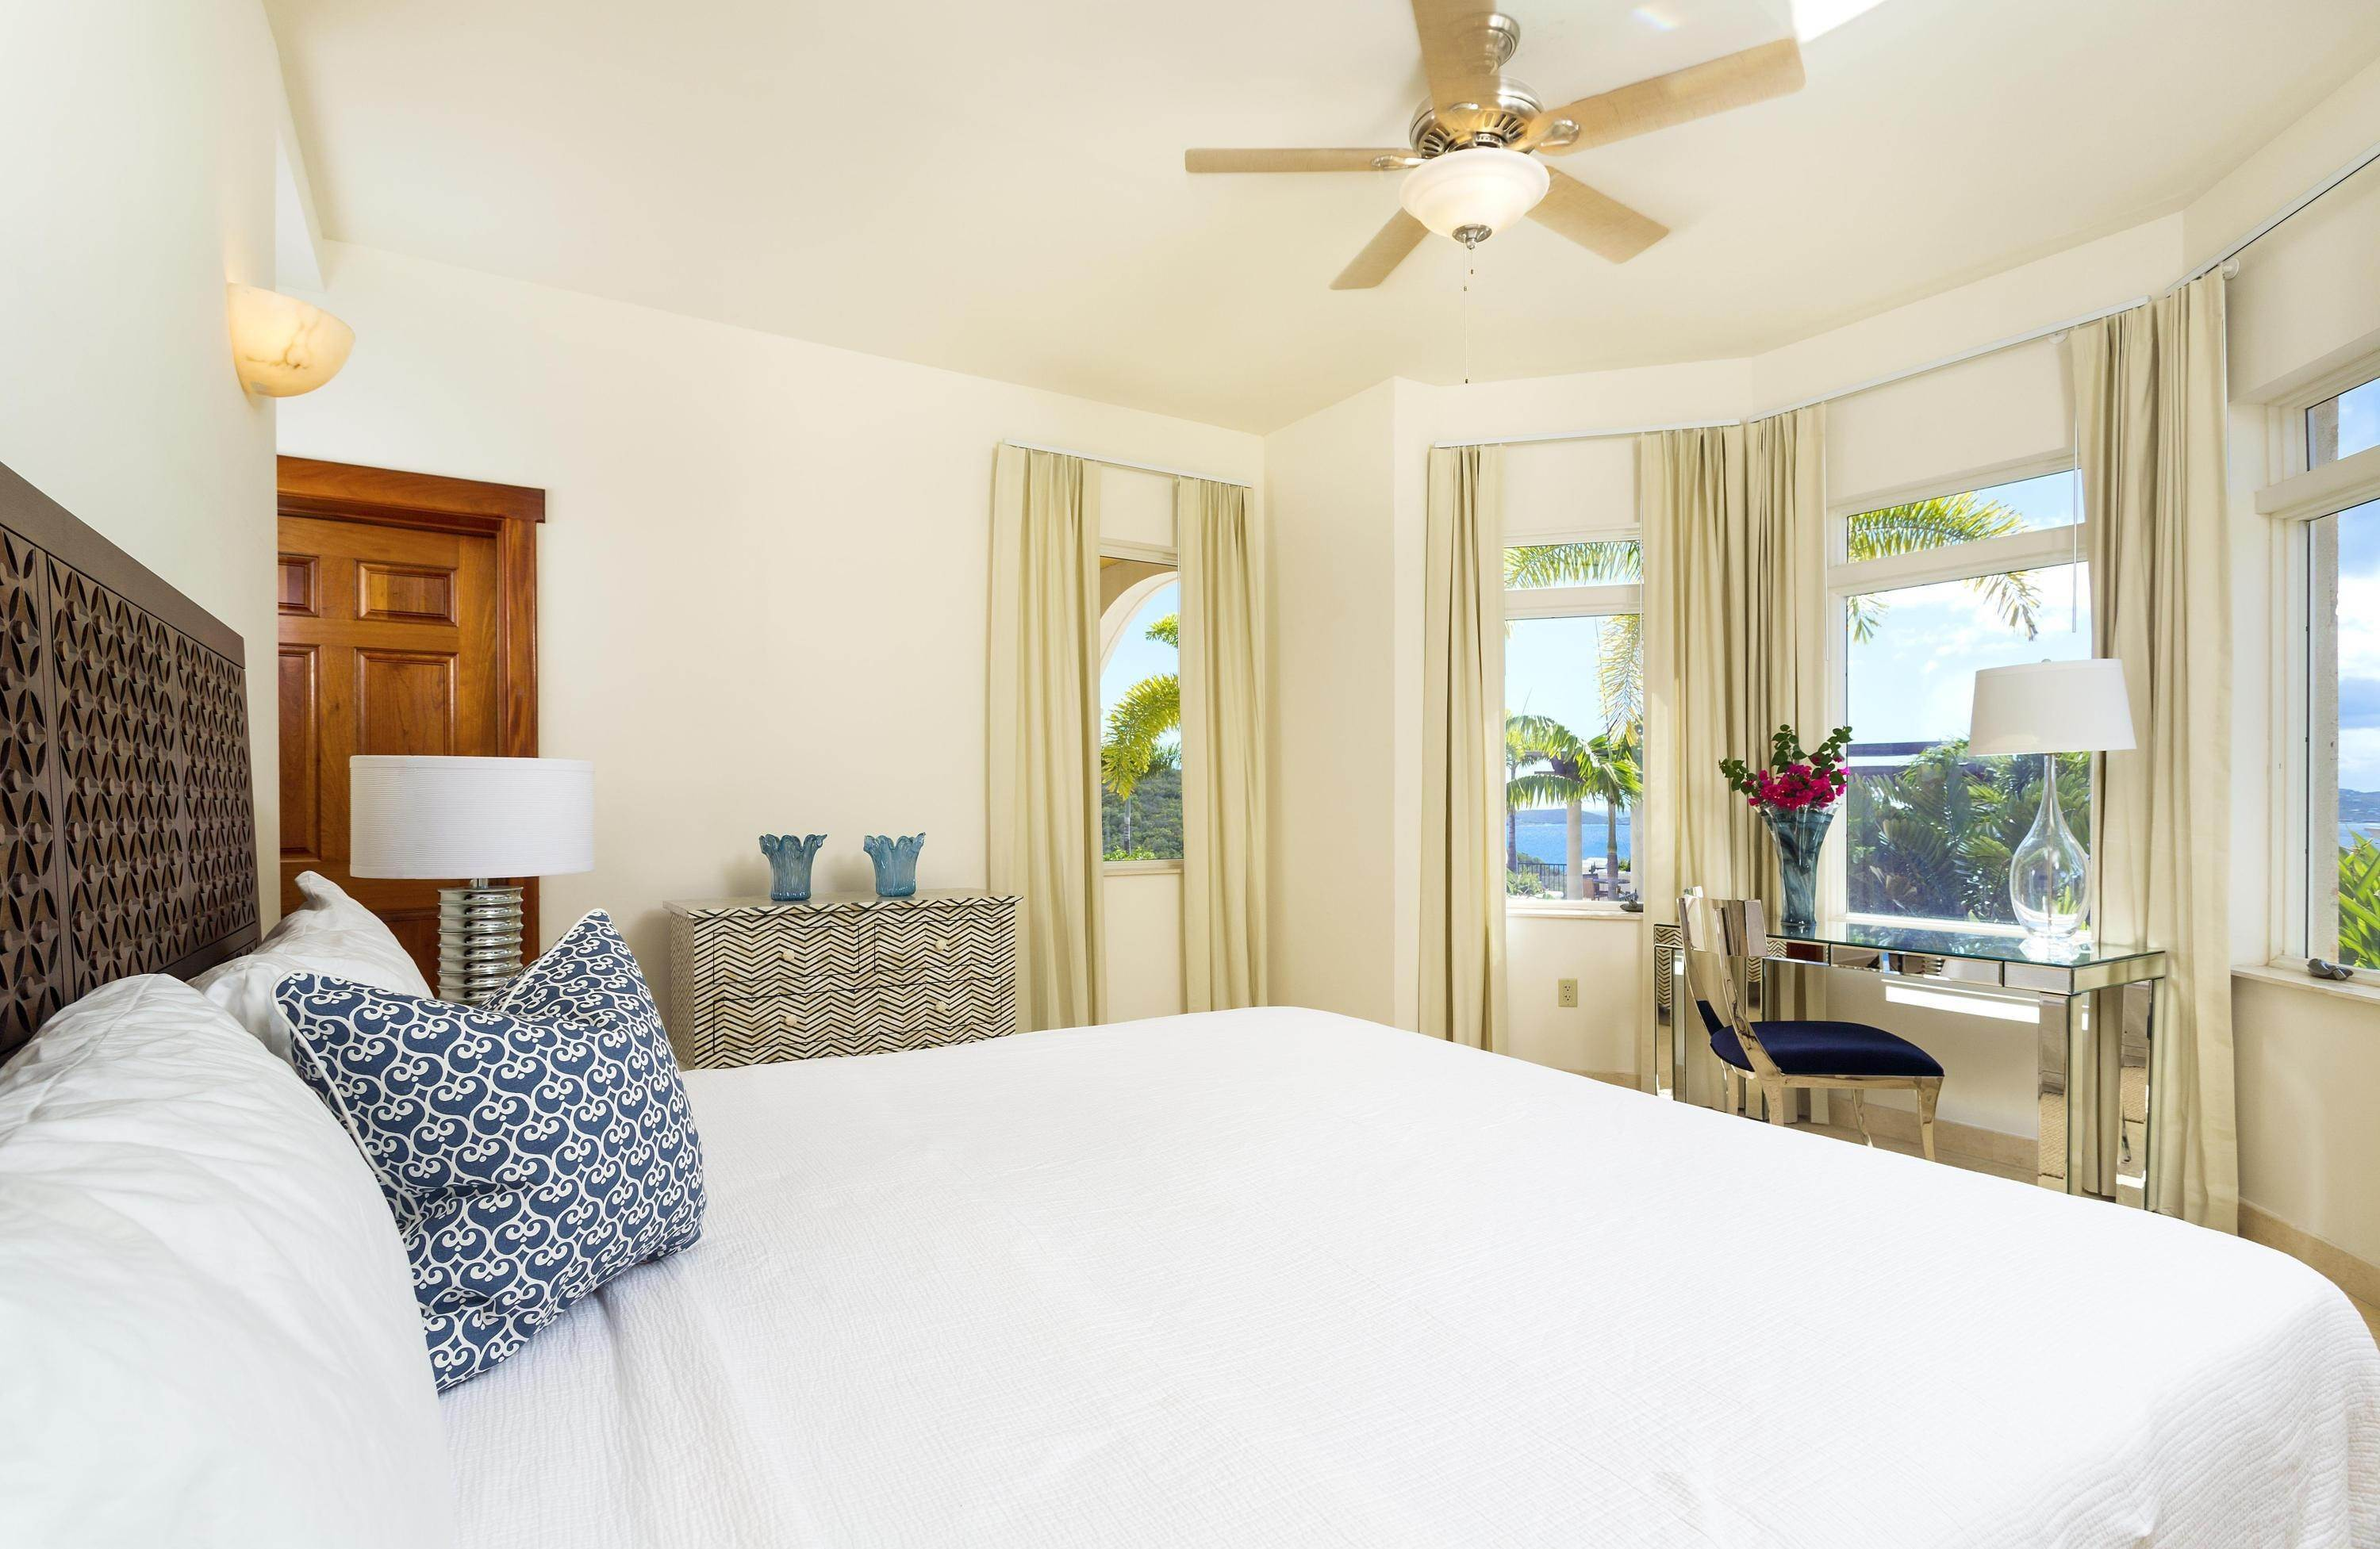 4. Condominium para Venda às 11 Enighed Cruz Bay St John, Virgin Islands,00830 U. S. Ilhas Virgens